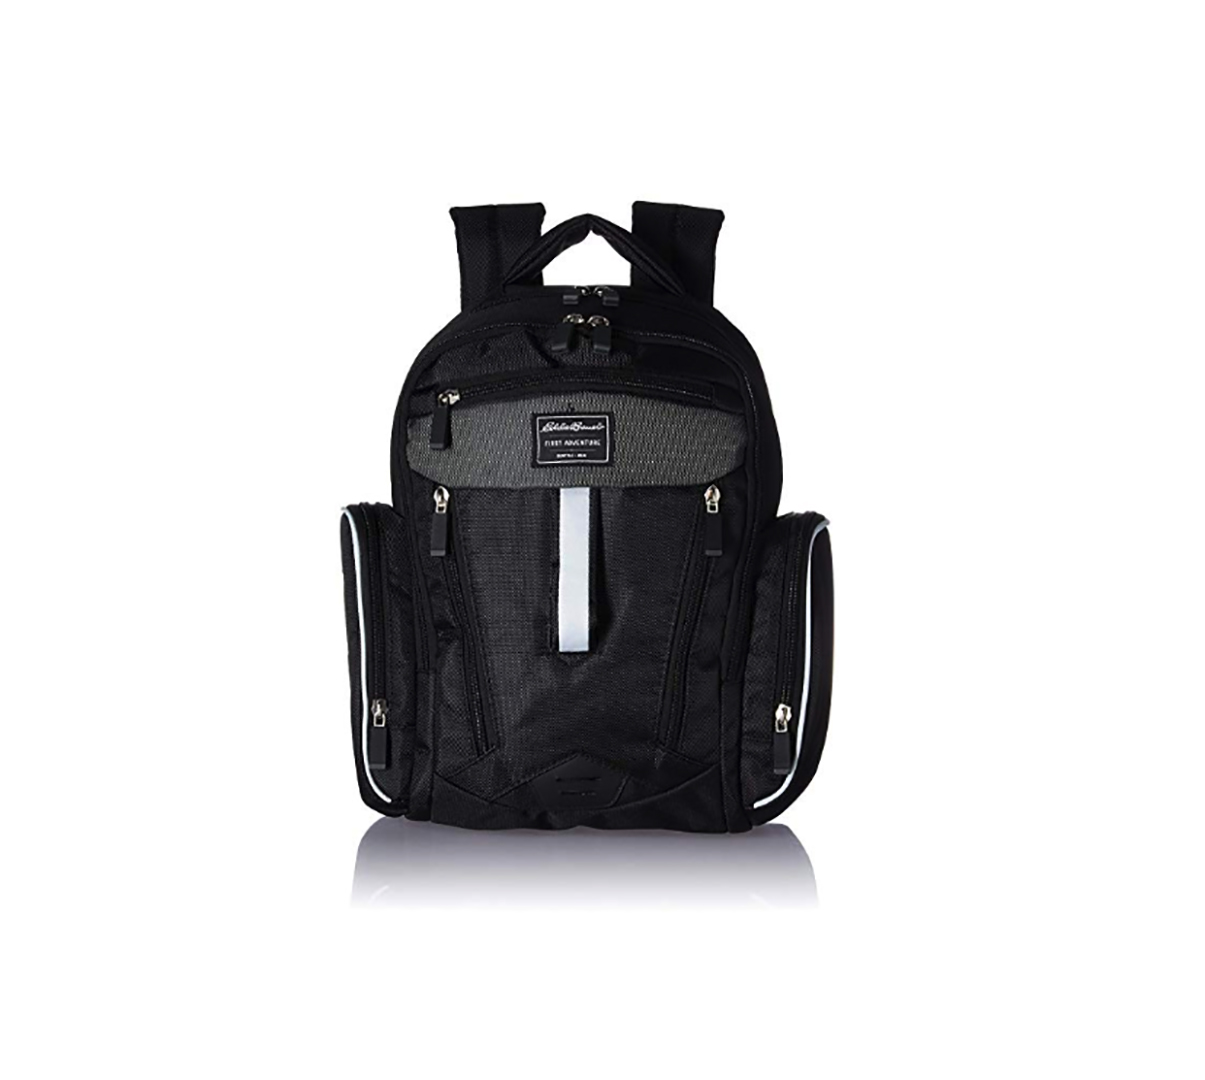 Eddie Bauer Diaper Bag Backpack